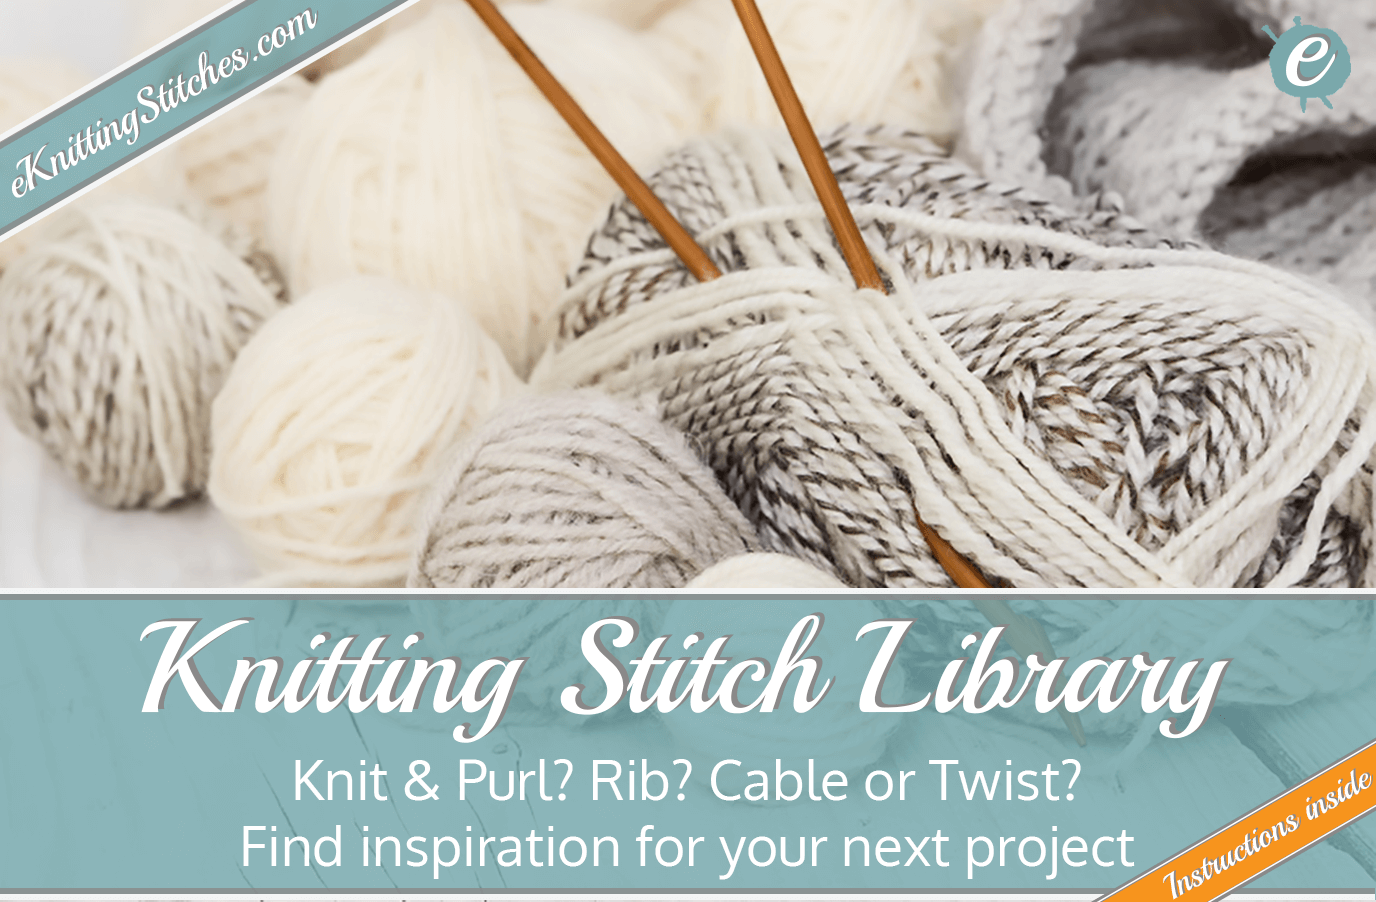 Knitting Stitch Library Title